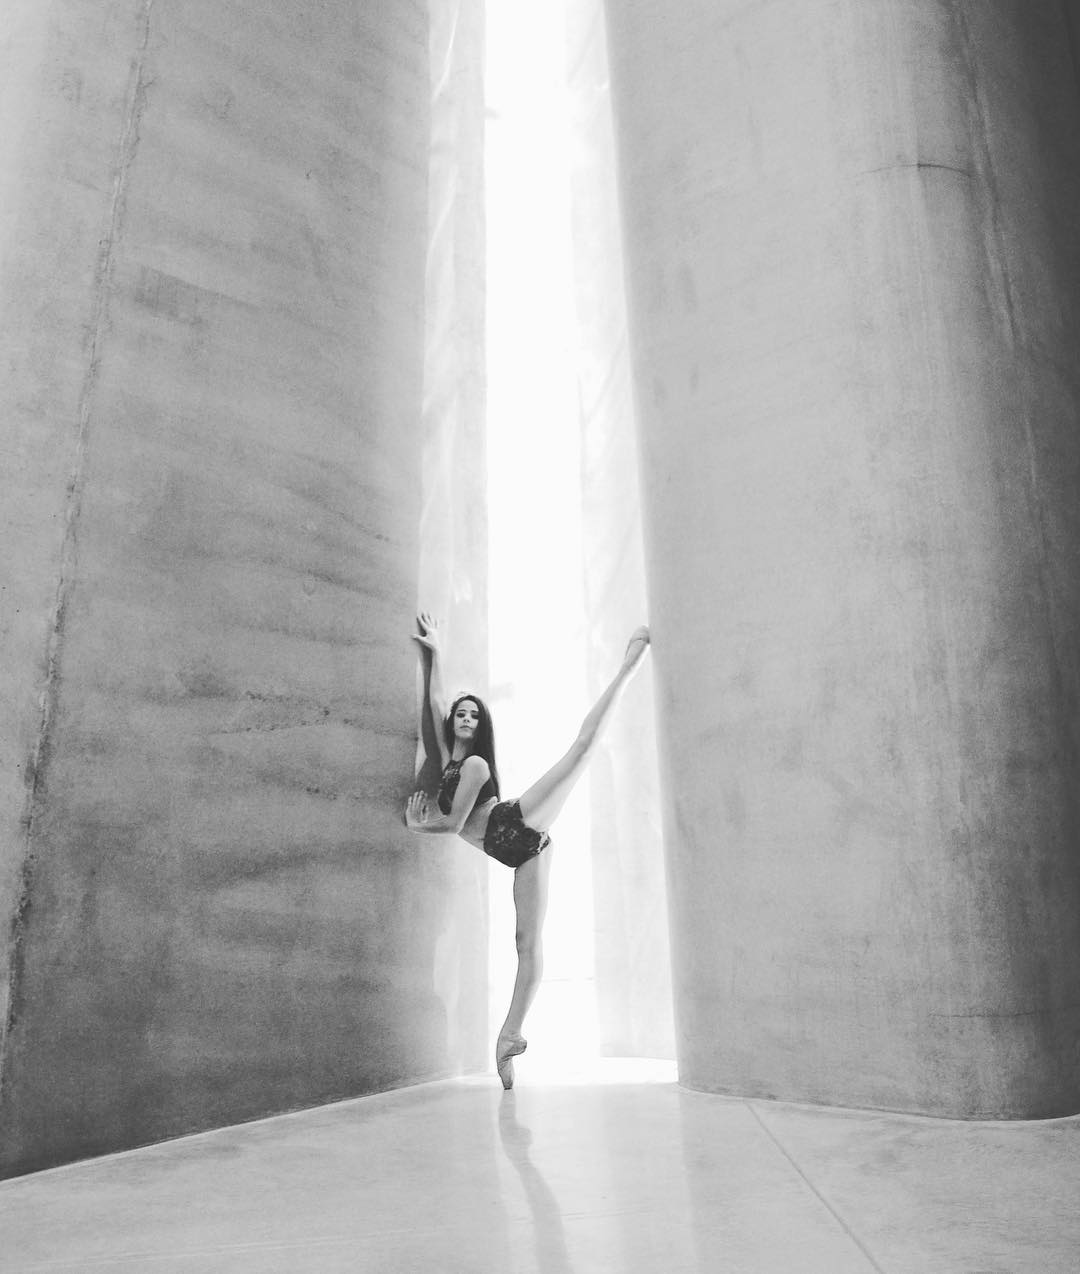 We love this recently published photo by Lisa Taylor Photography of the talented ballerina, Asia-Rose Blowfield,(@asiatheballerina)  from MEBA (@meba_ballet), shown at the Govett Brewster Art Gallery / Len Lye Centre (@govettbrewster).  The concrete 'curtain' walls seem to create the perfect backdrop for a dancer. Director, Jo Aitken (a former dancer at MEBA) was fortunate to work closely on this project as the Len Lye Centre Project Architect with Patterson Associates.